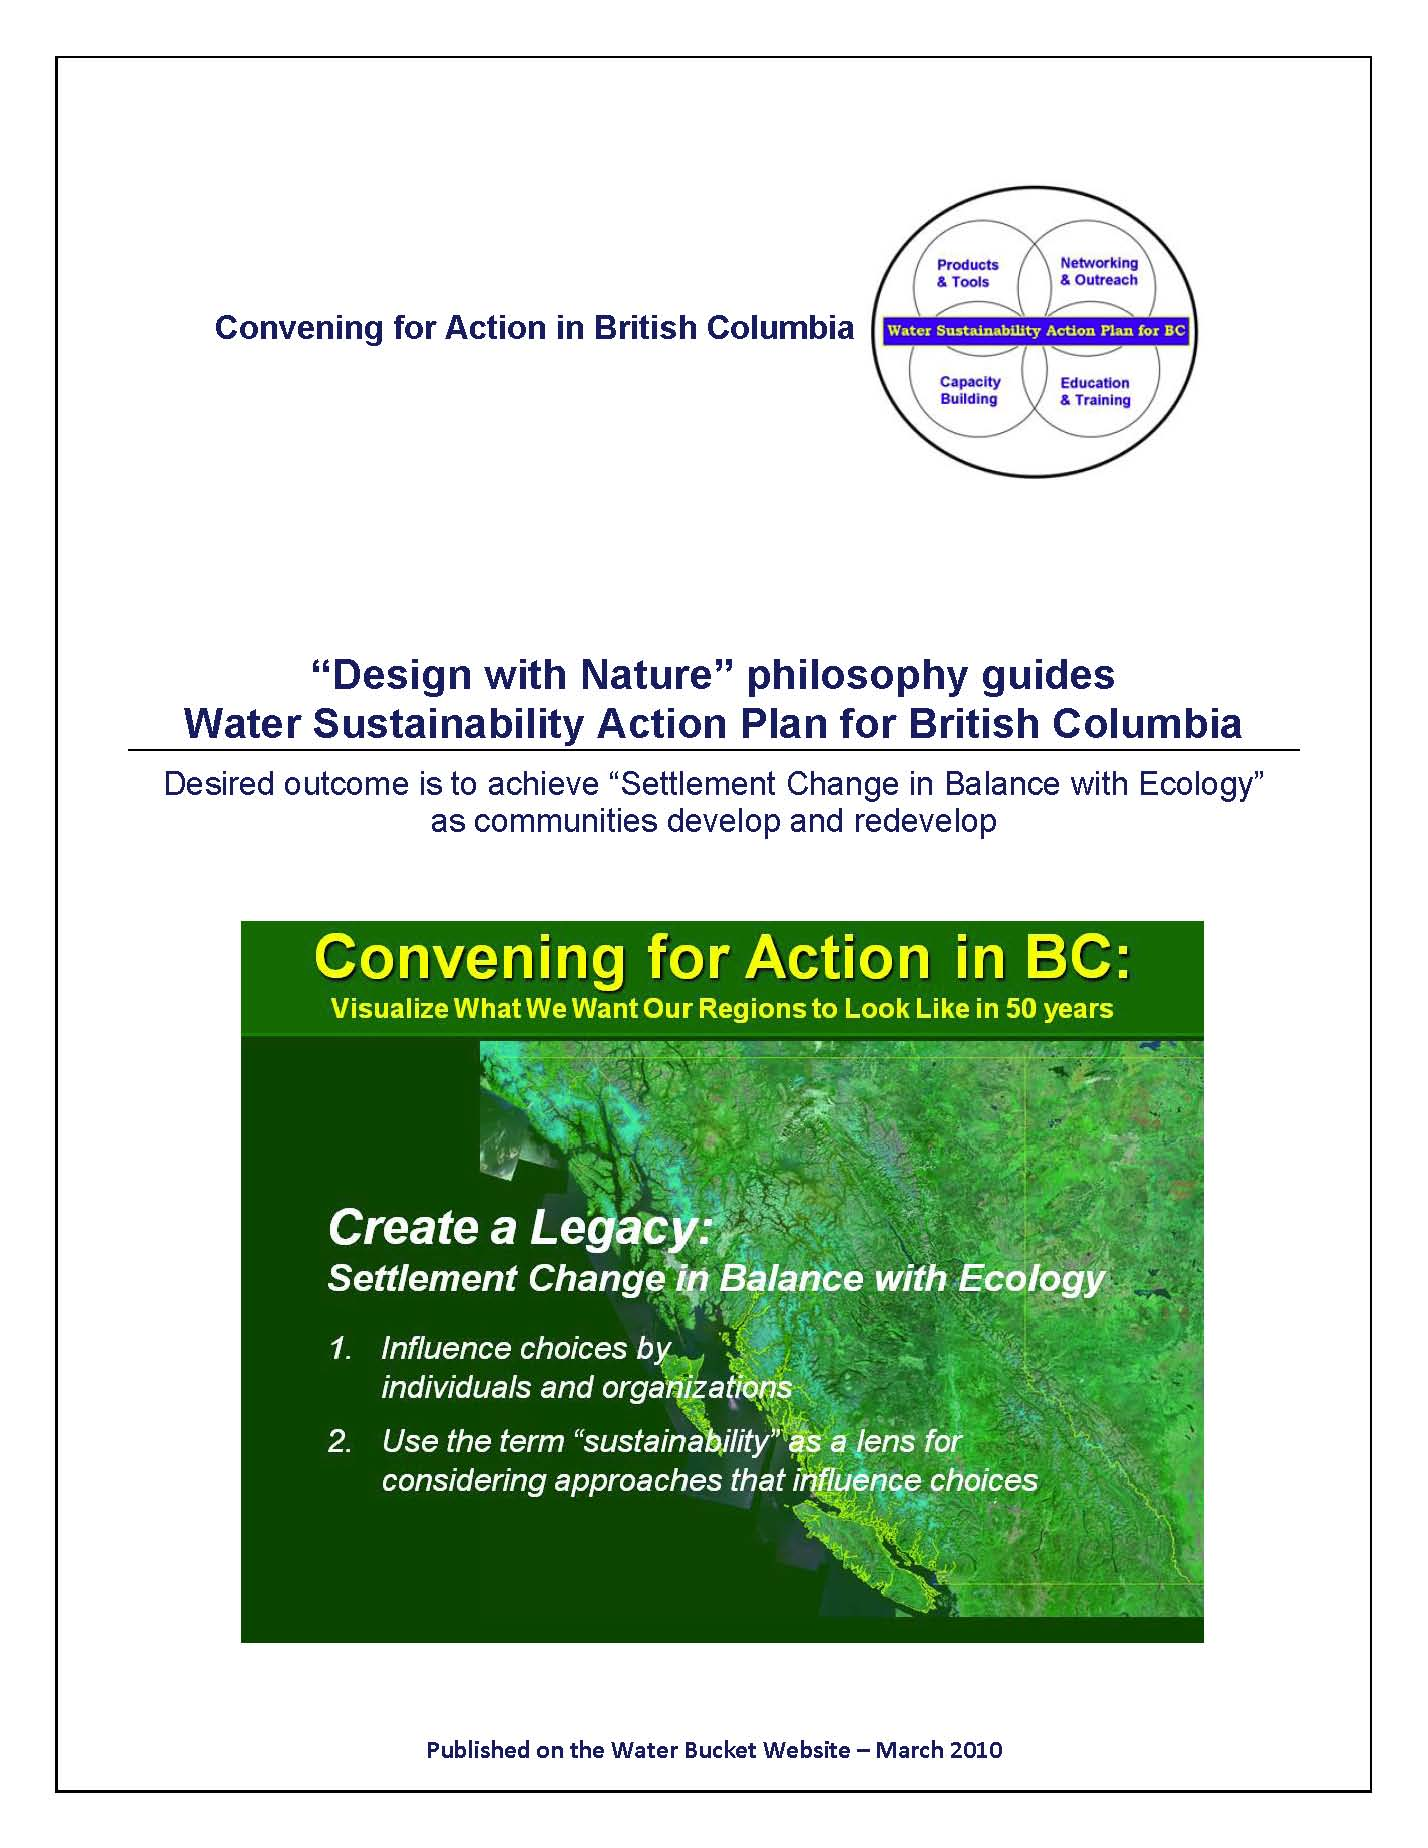 Bowker creek blueprint brings new meaning in british columbia to the bowker creek blueprint brings new meaning in british columbia to the ian mcharg vision for designing with nature malvernweather Image collections